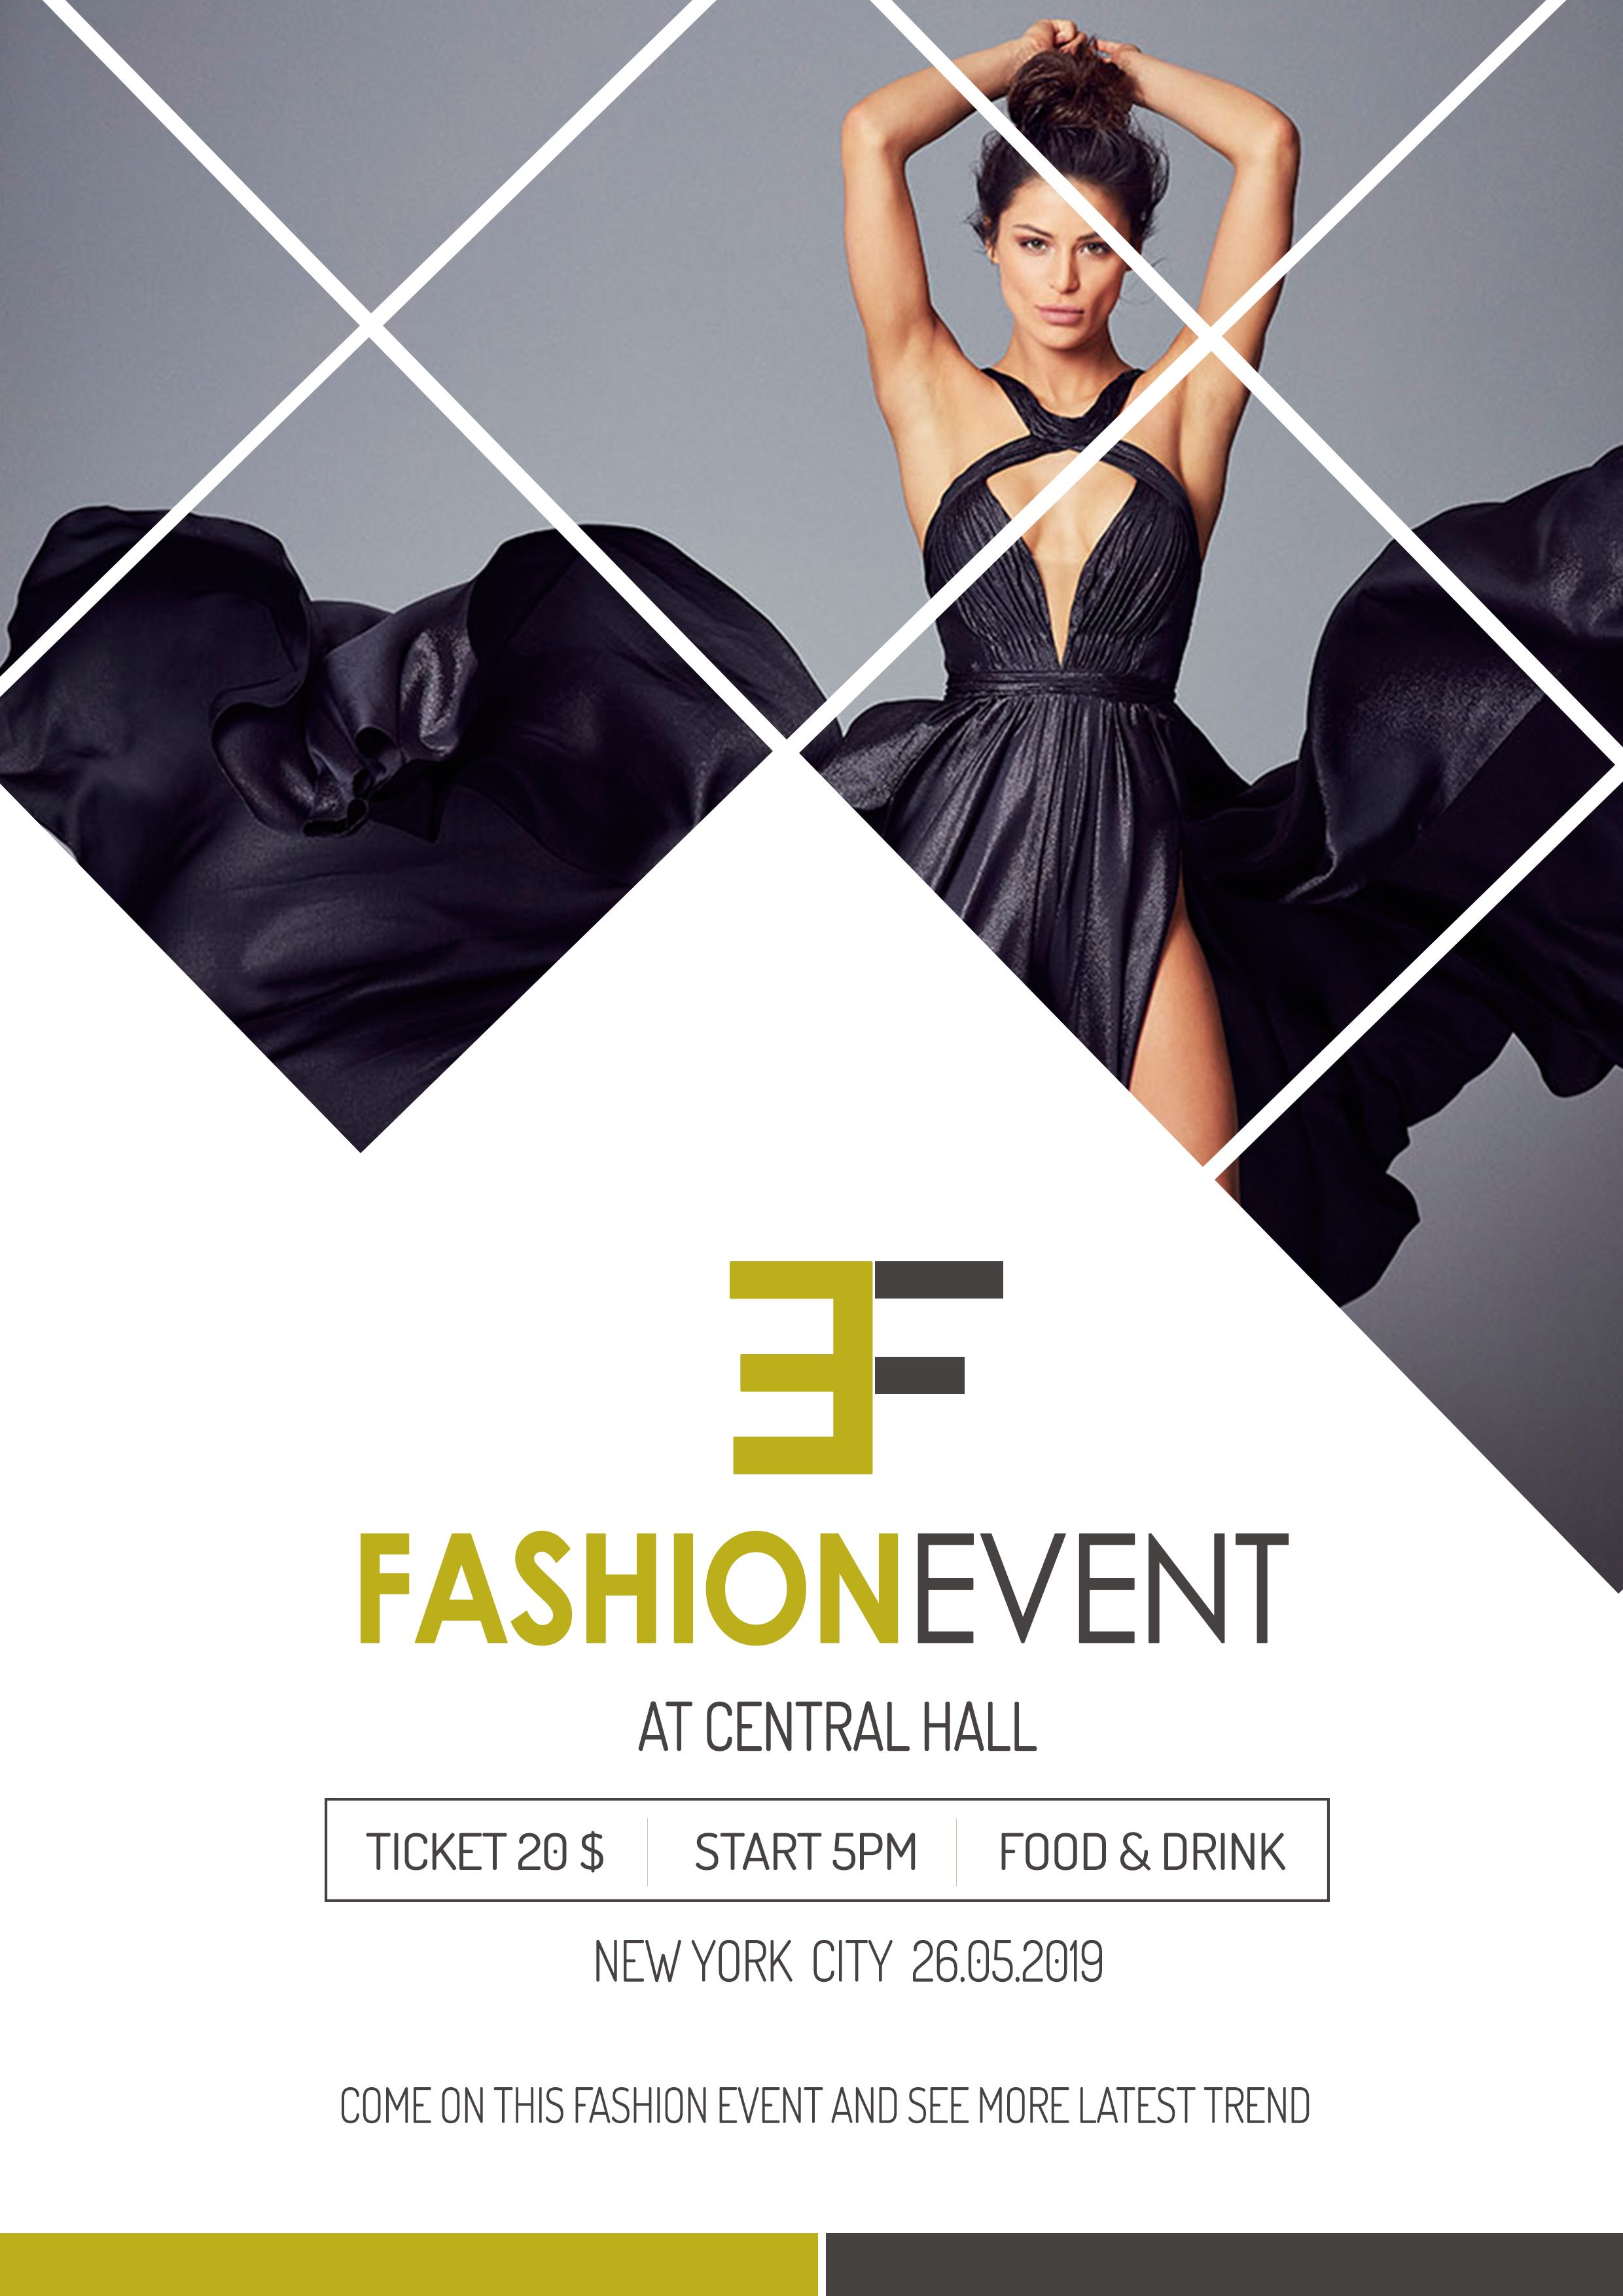 fashion event poster design in photoshop | Event poster ...